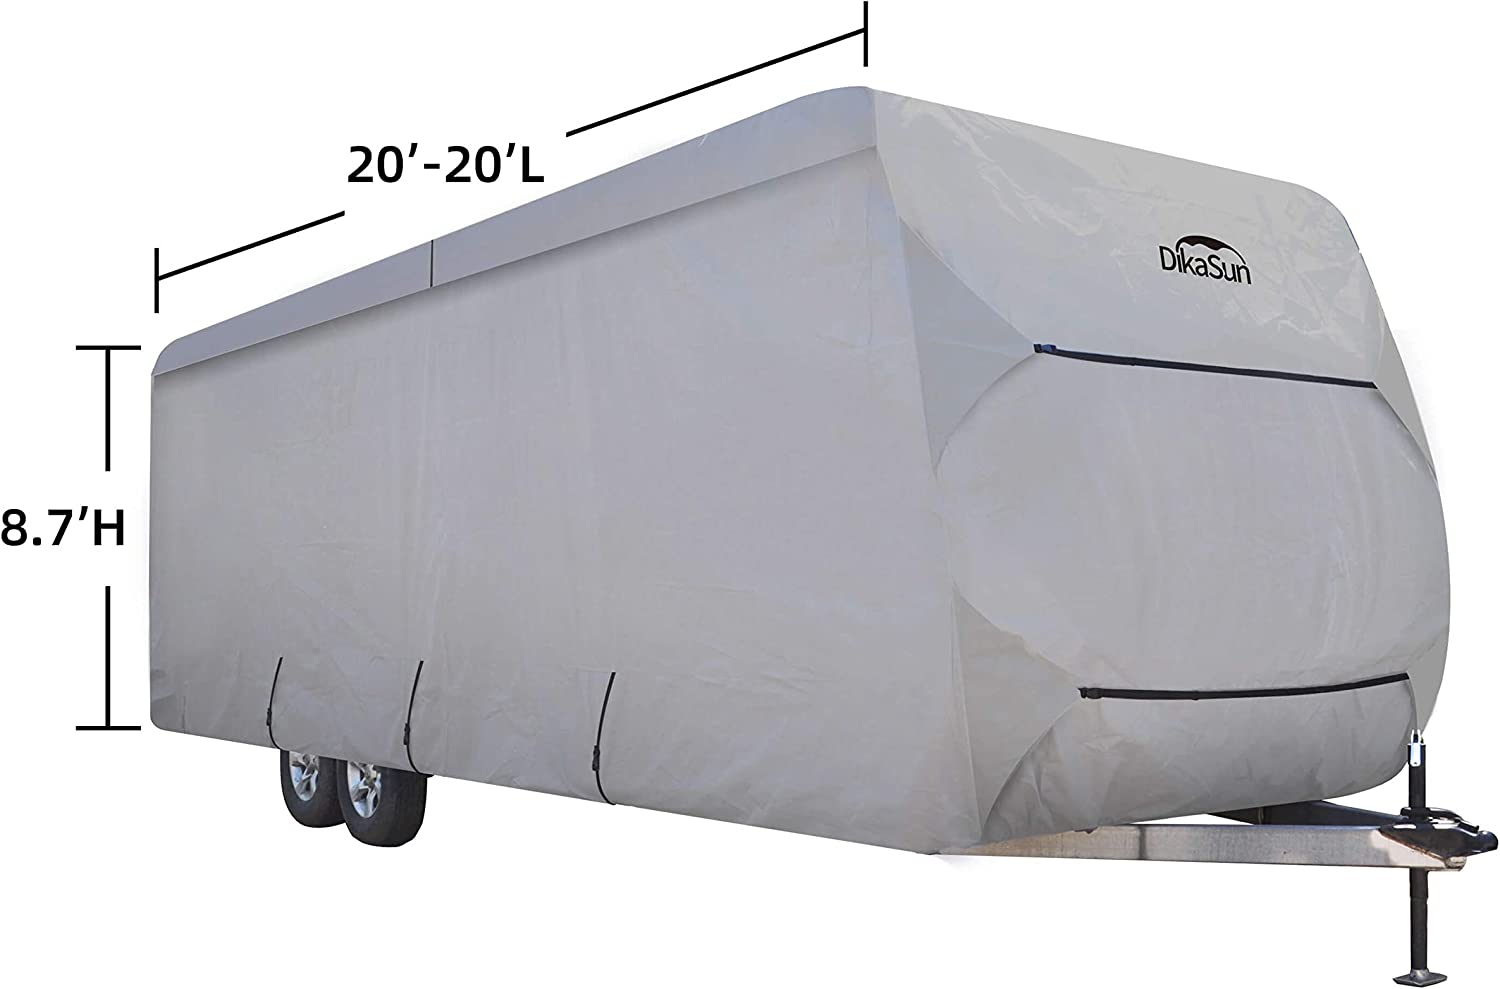 DikaSun Travel Trailer RV Cover PolyPro 3 Layer Anti-Dust Protection Windproof Anti-UV Block Cover fits 27ft 30ft